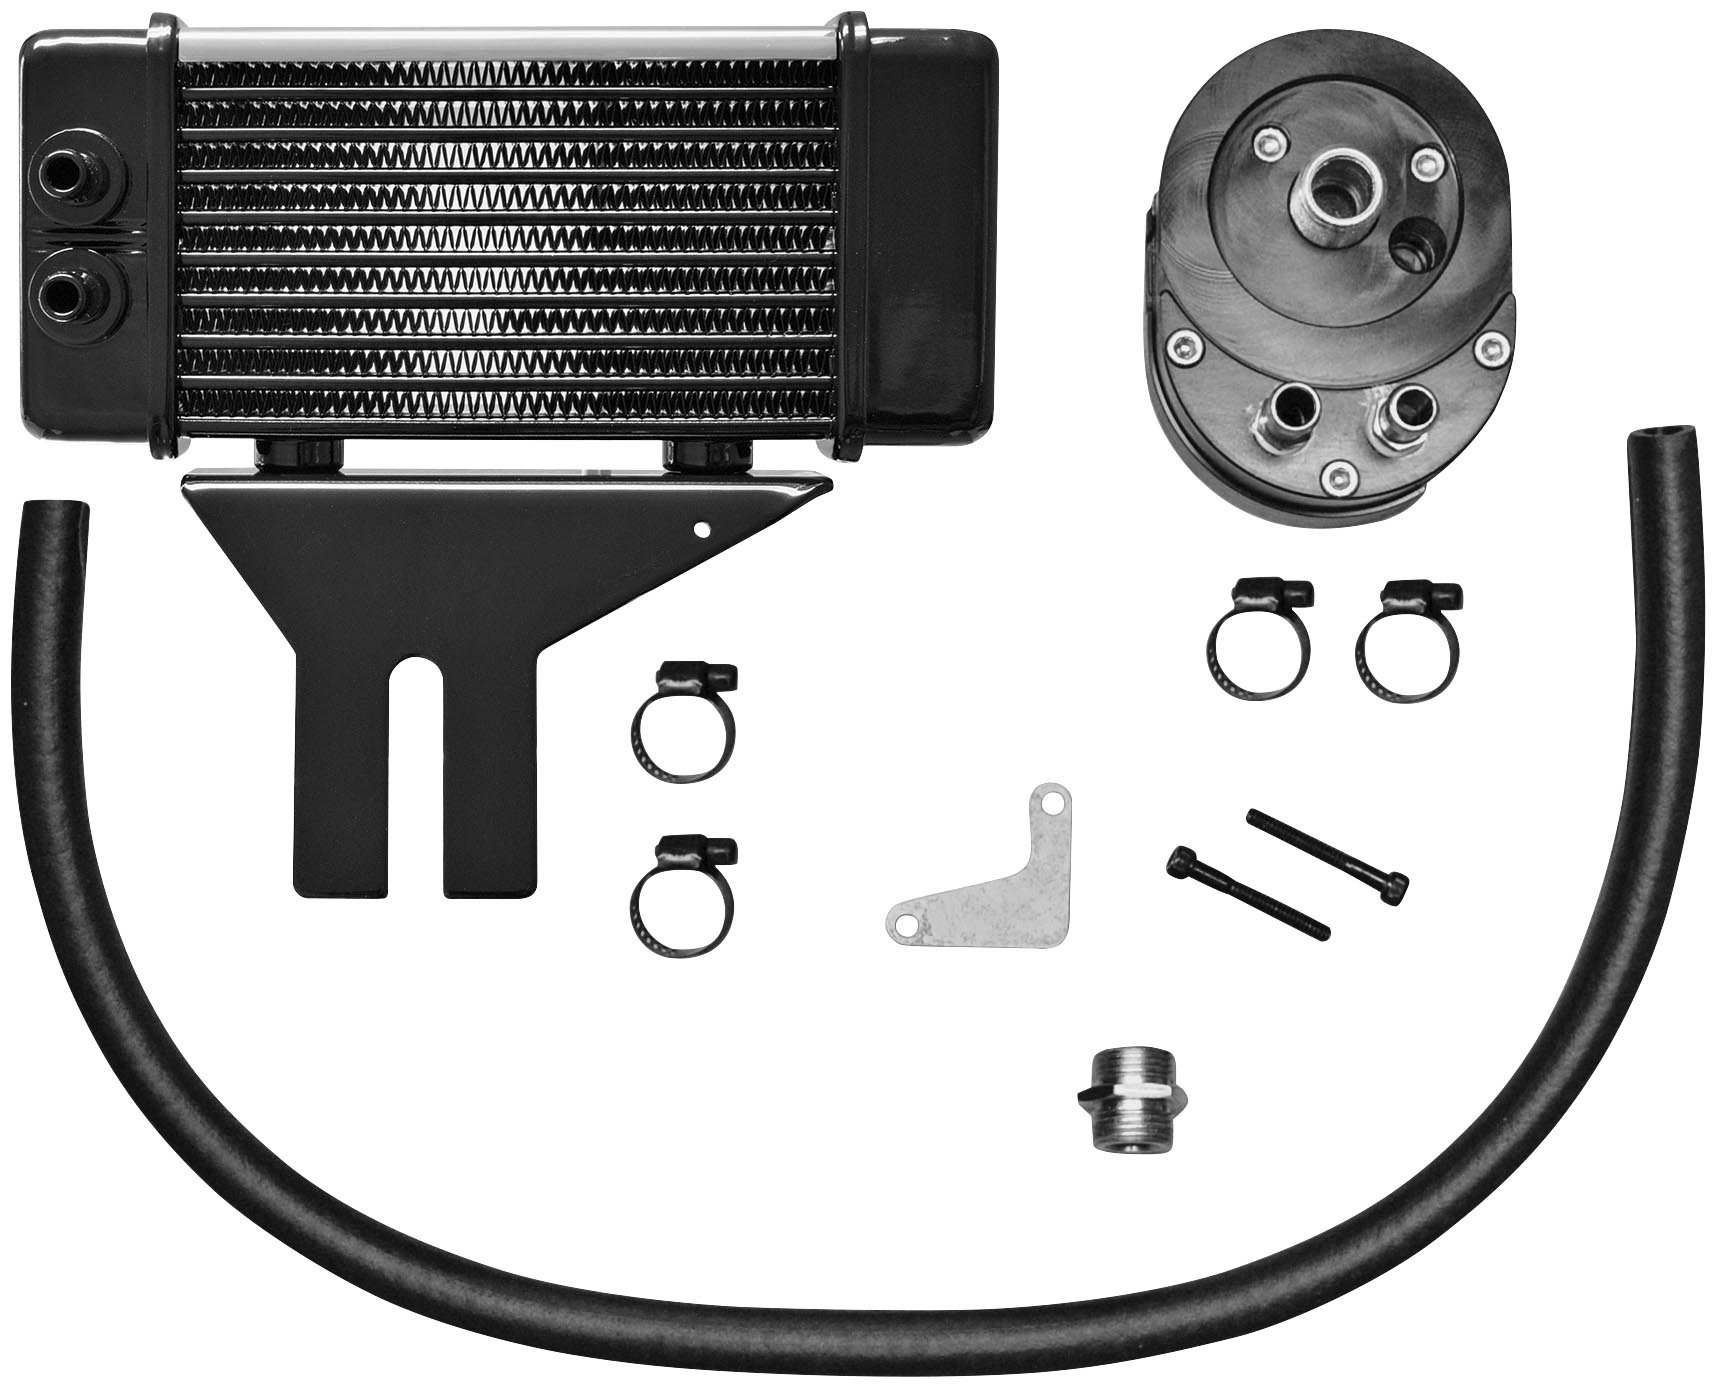 Jagg Oil Coolers Horizontal 10 Row Oil Cooler - Low Mount - Chrome 750-2580